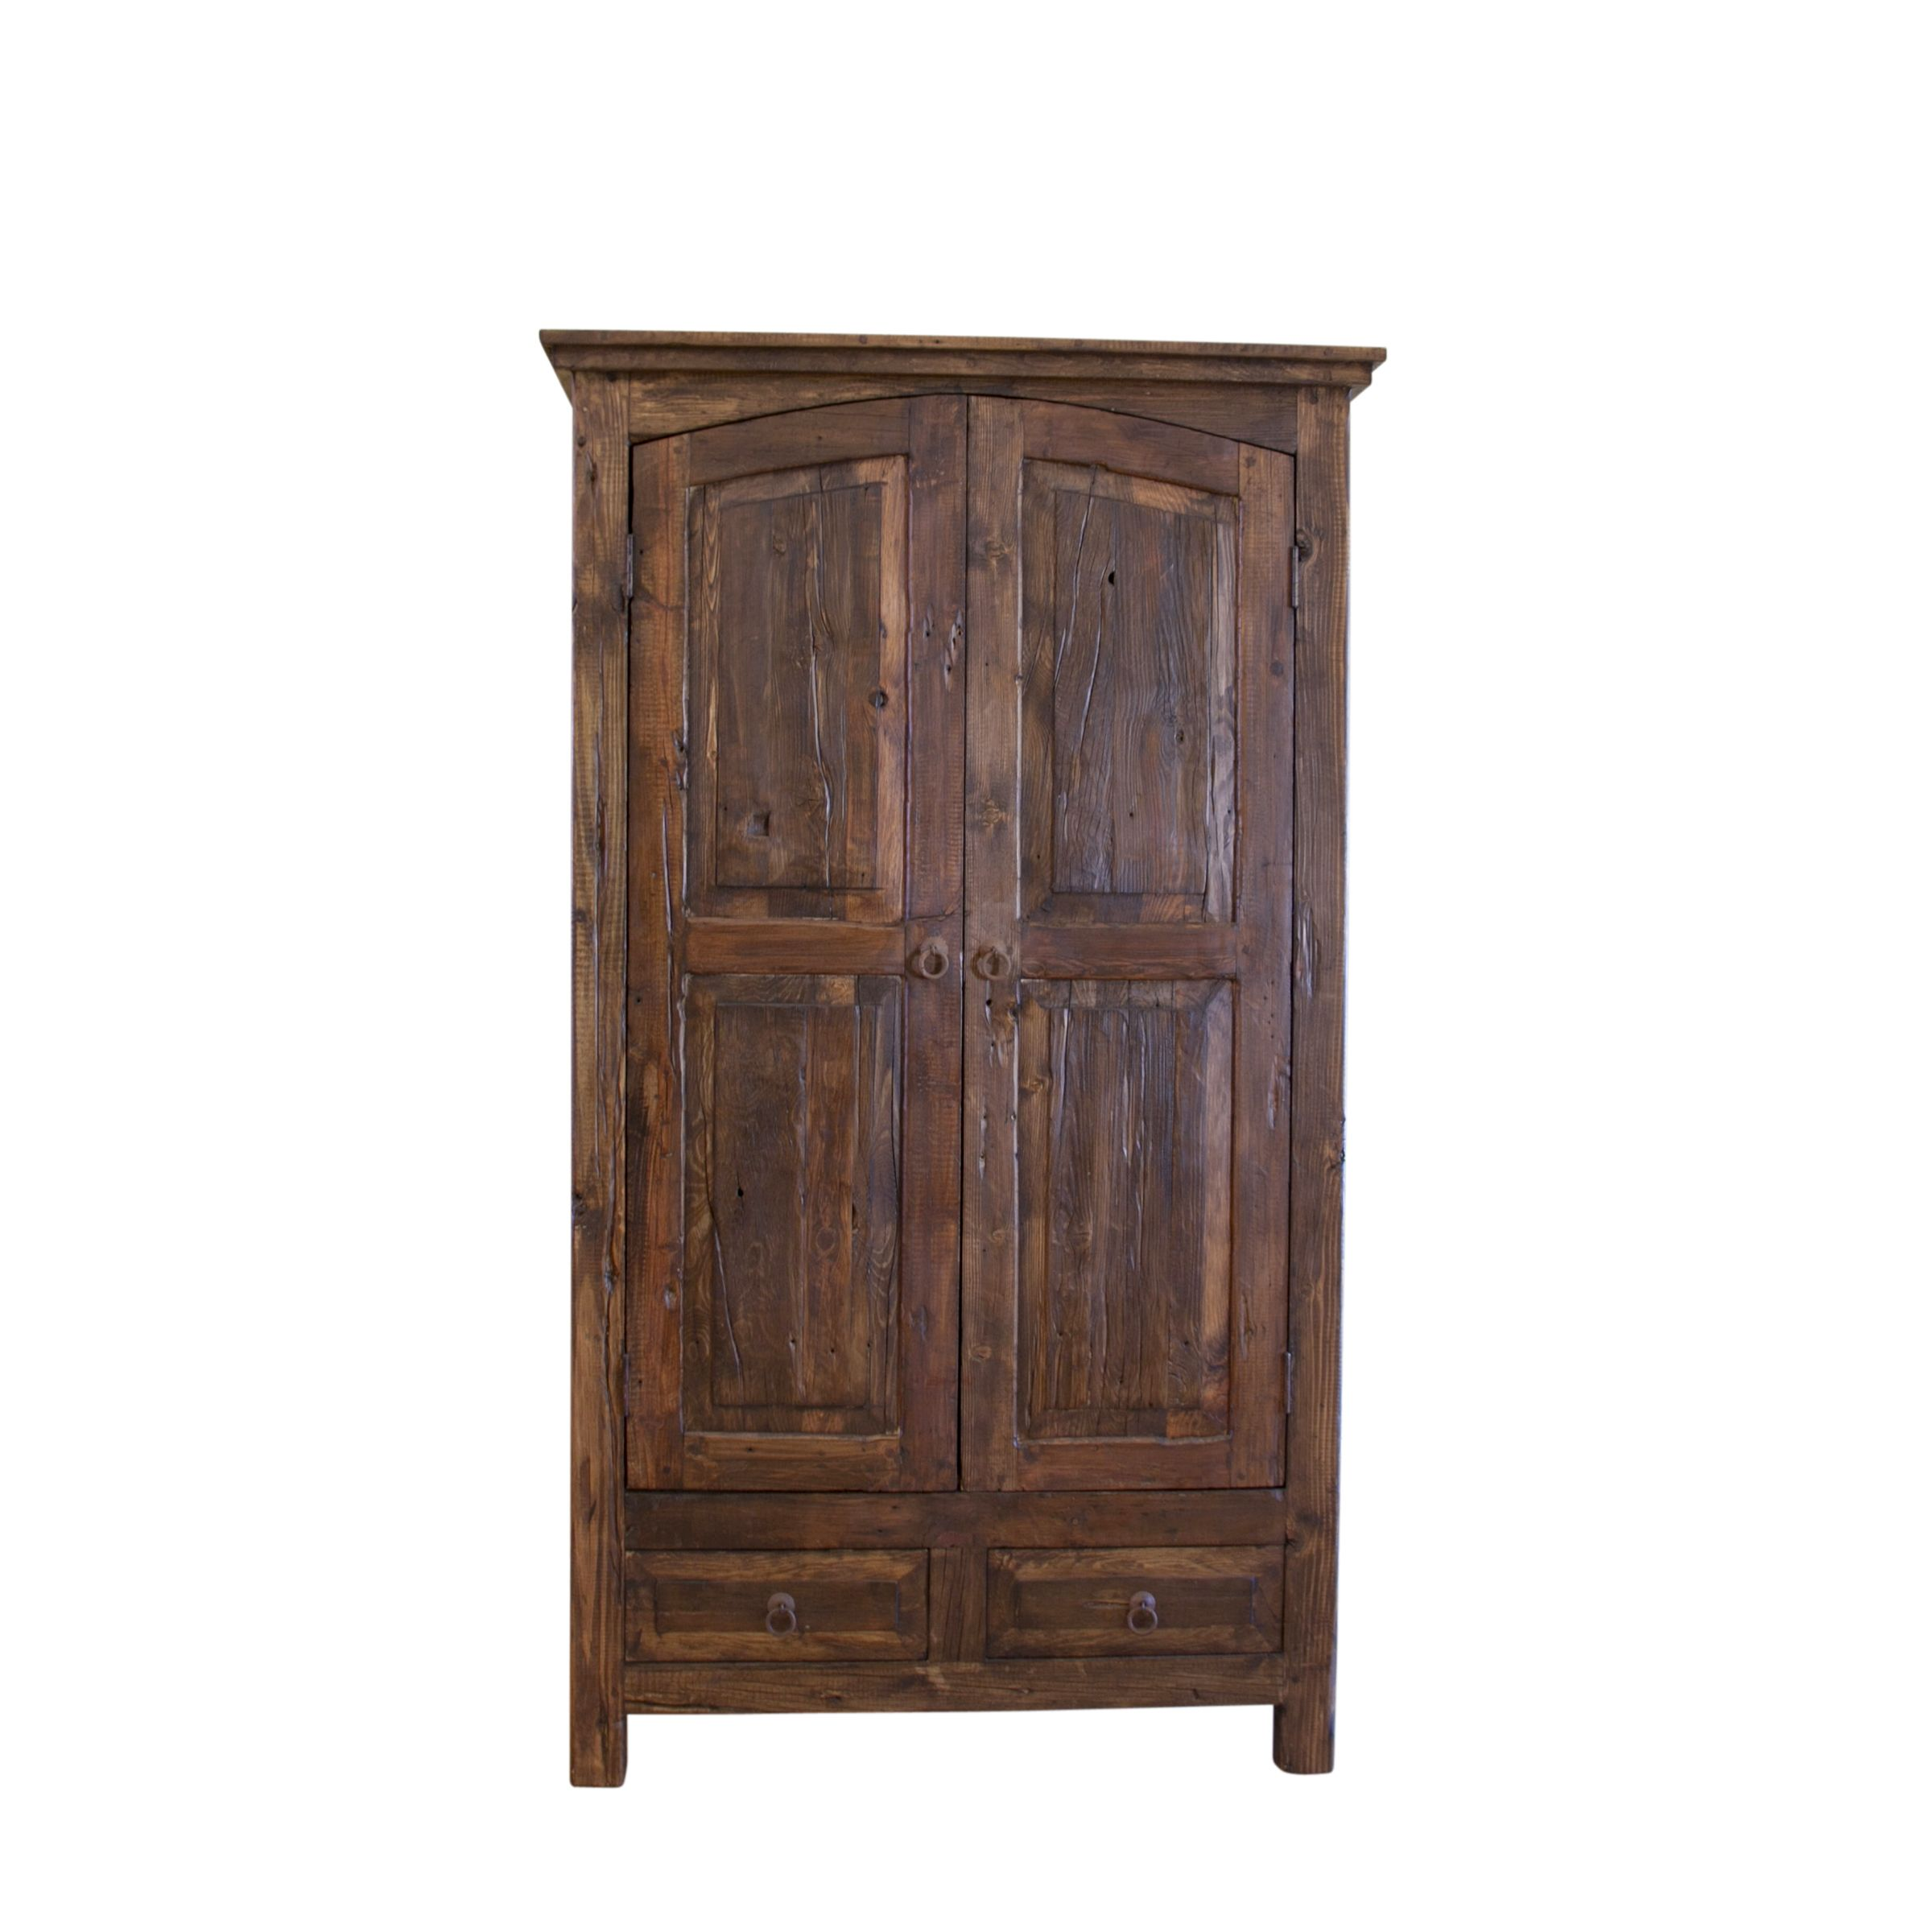 Rustic Jewelry Armoire Rustic Jewelry Armoire  Home  Pinterest  Armoires Free